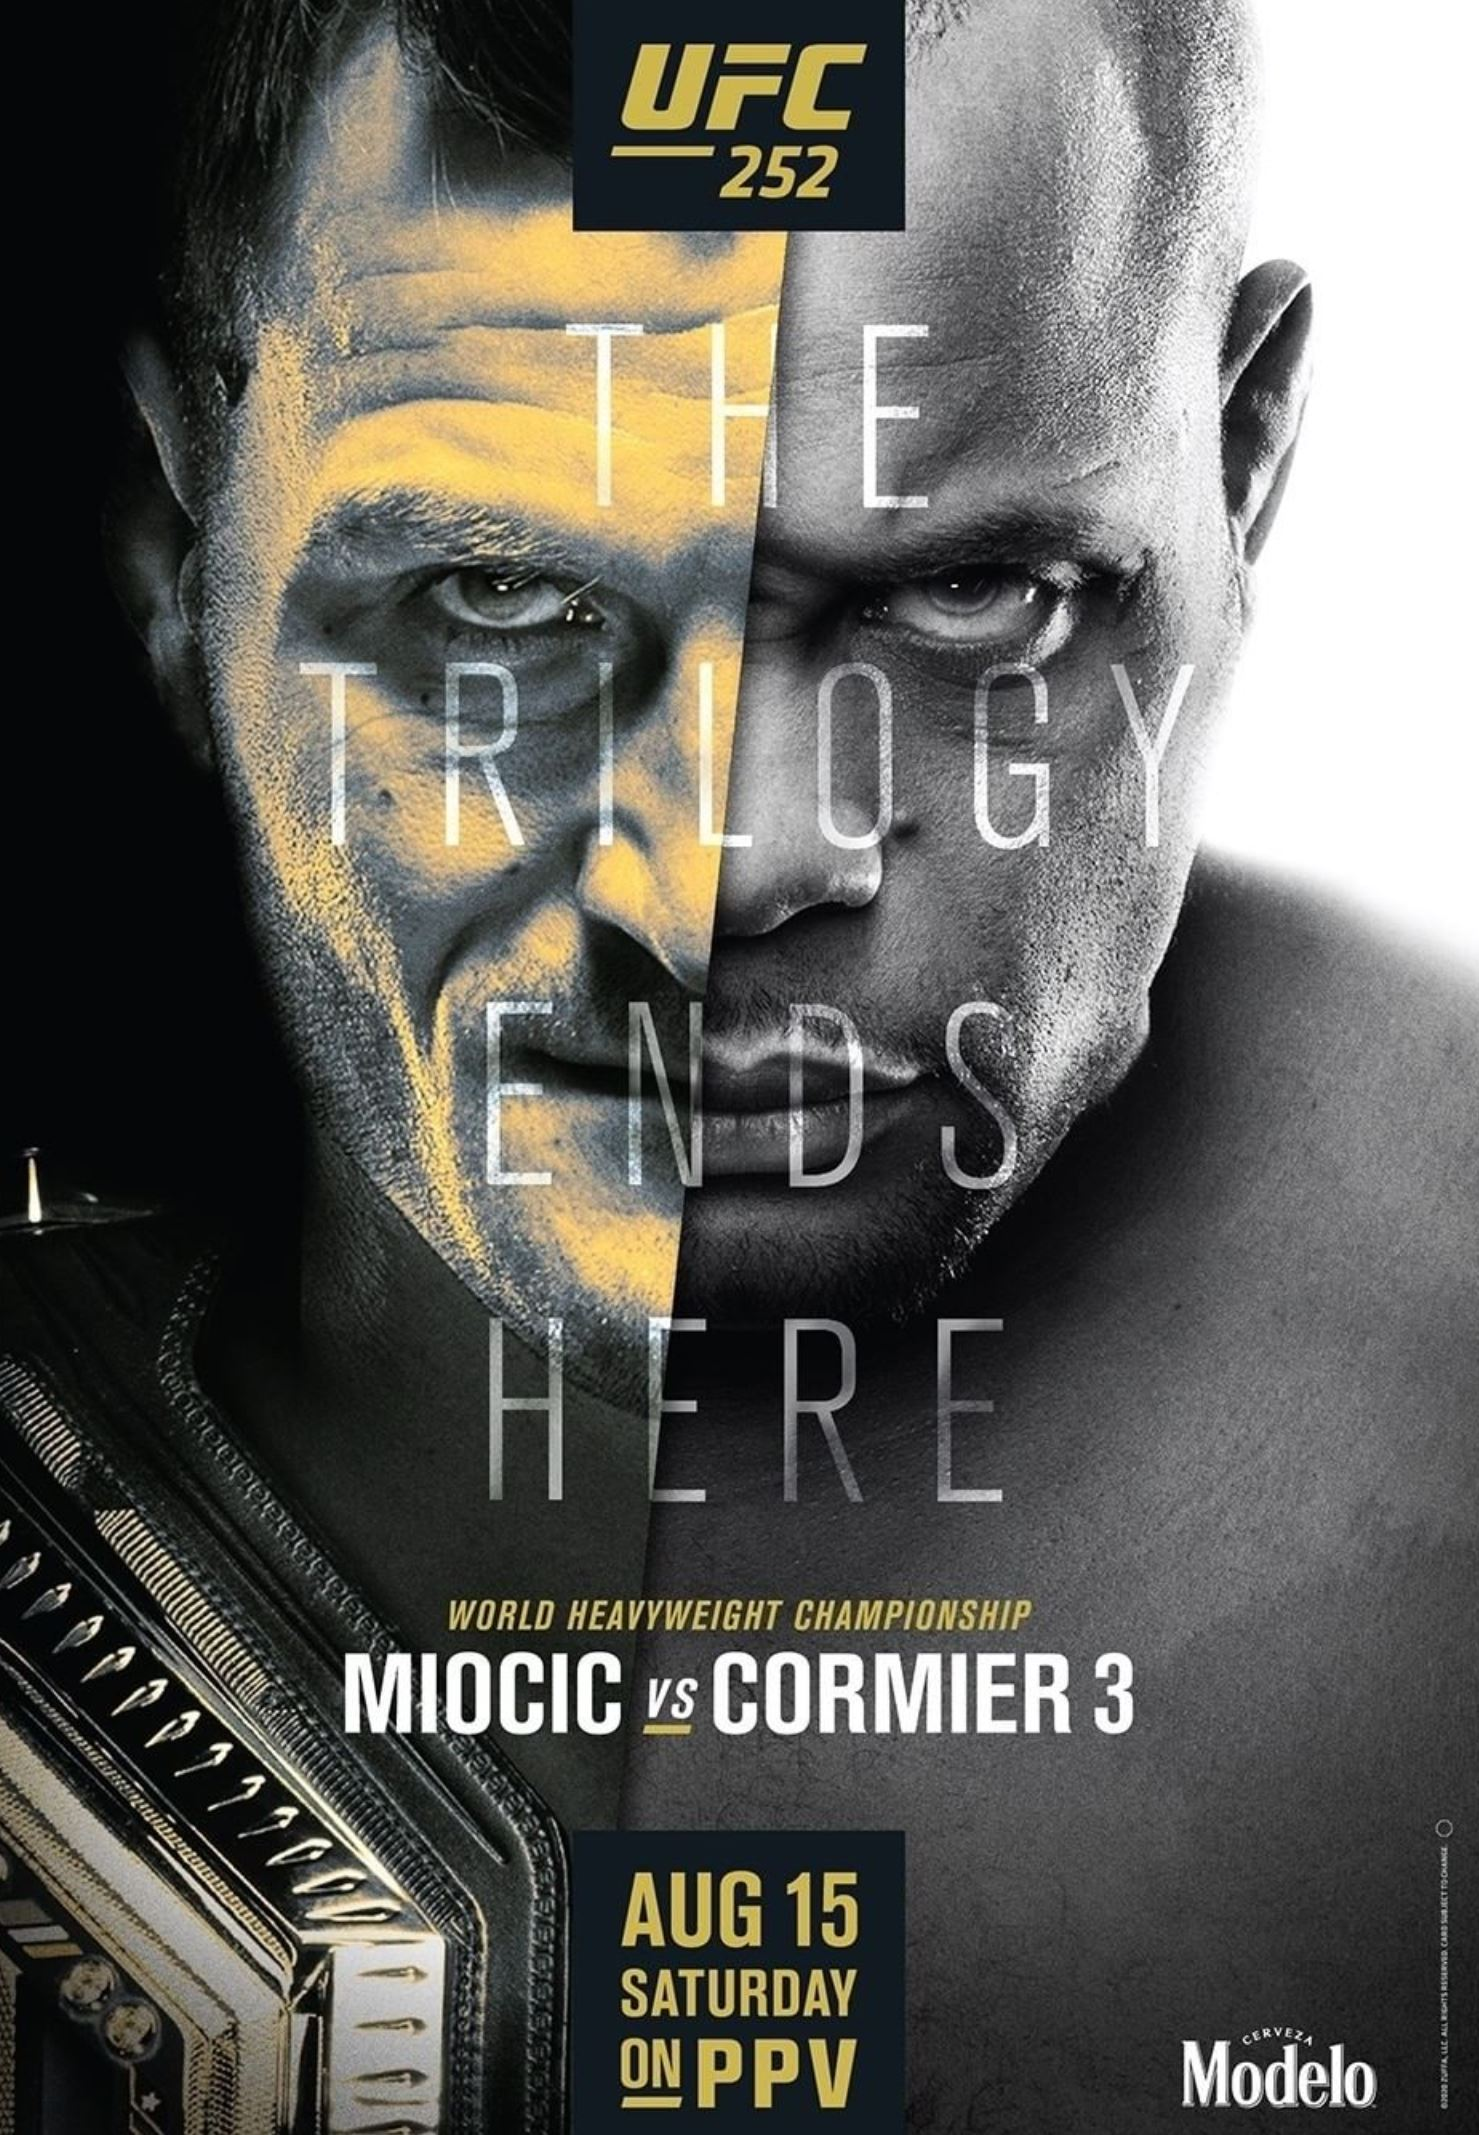 UFC 252 results poster